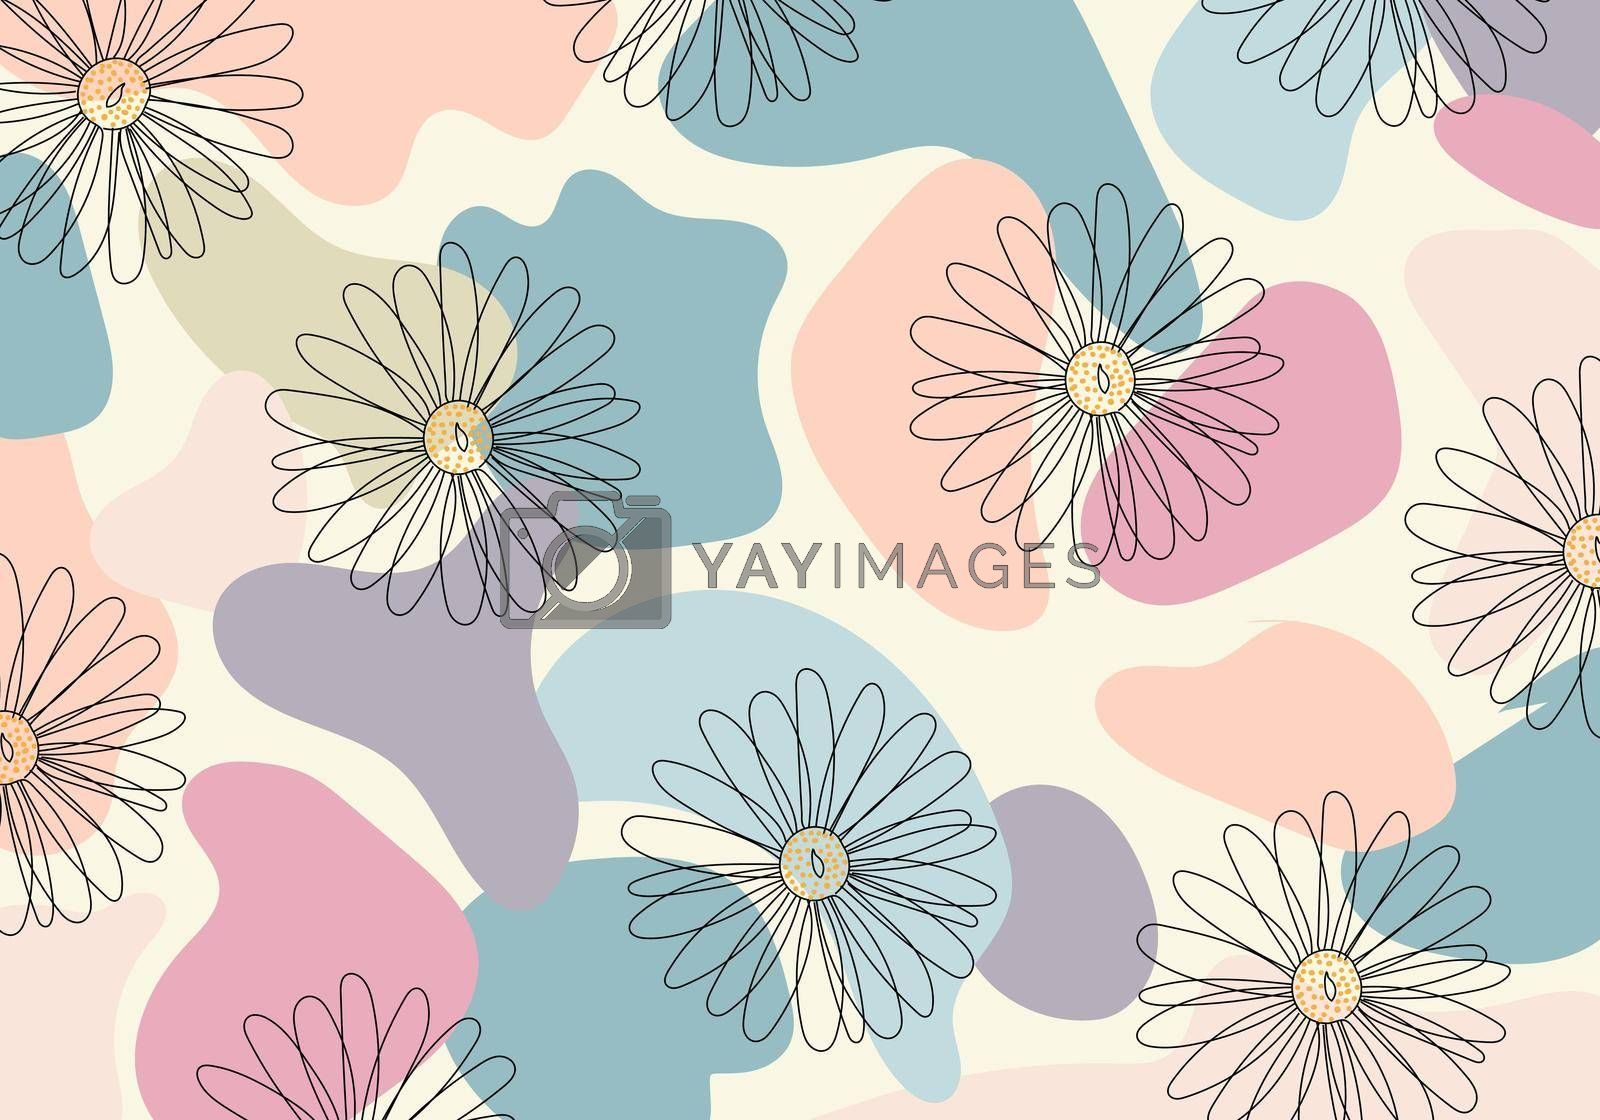 Royalty free image of Abstract pattern hand drawn line flower in organic shape pastel color background by phochi